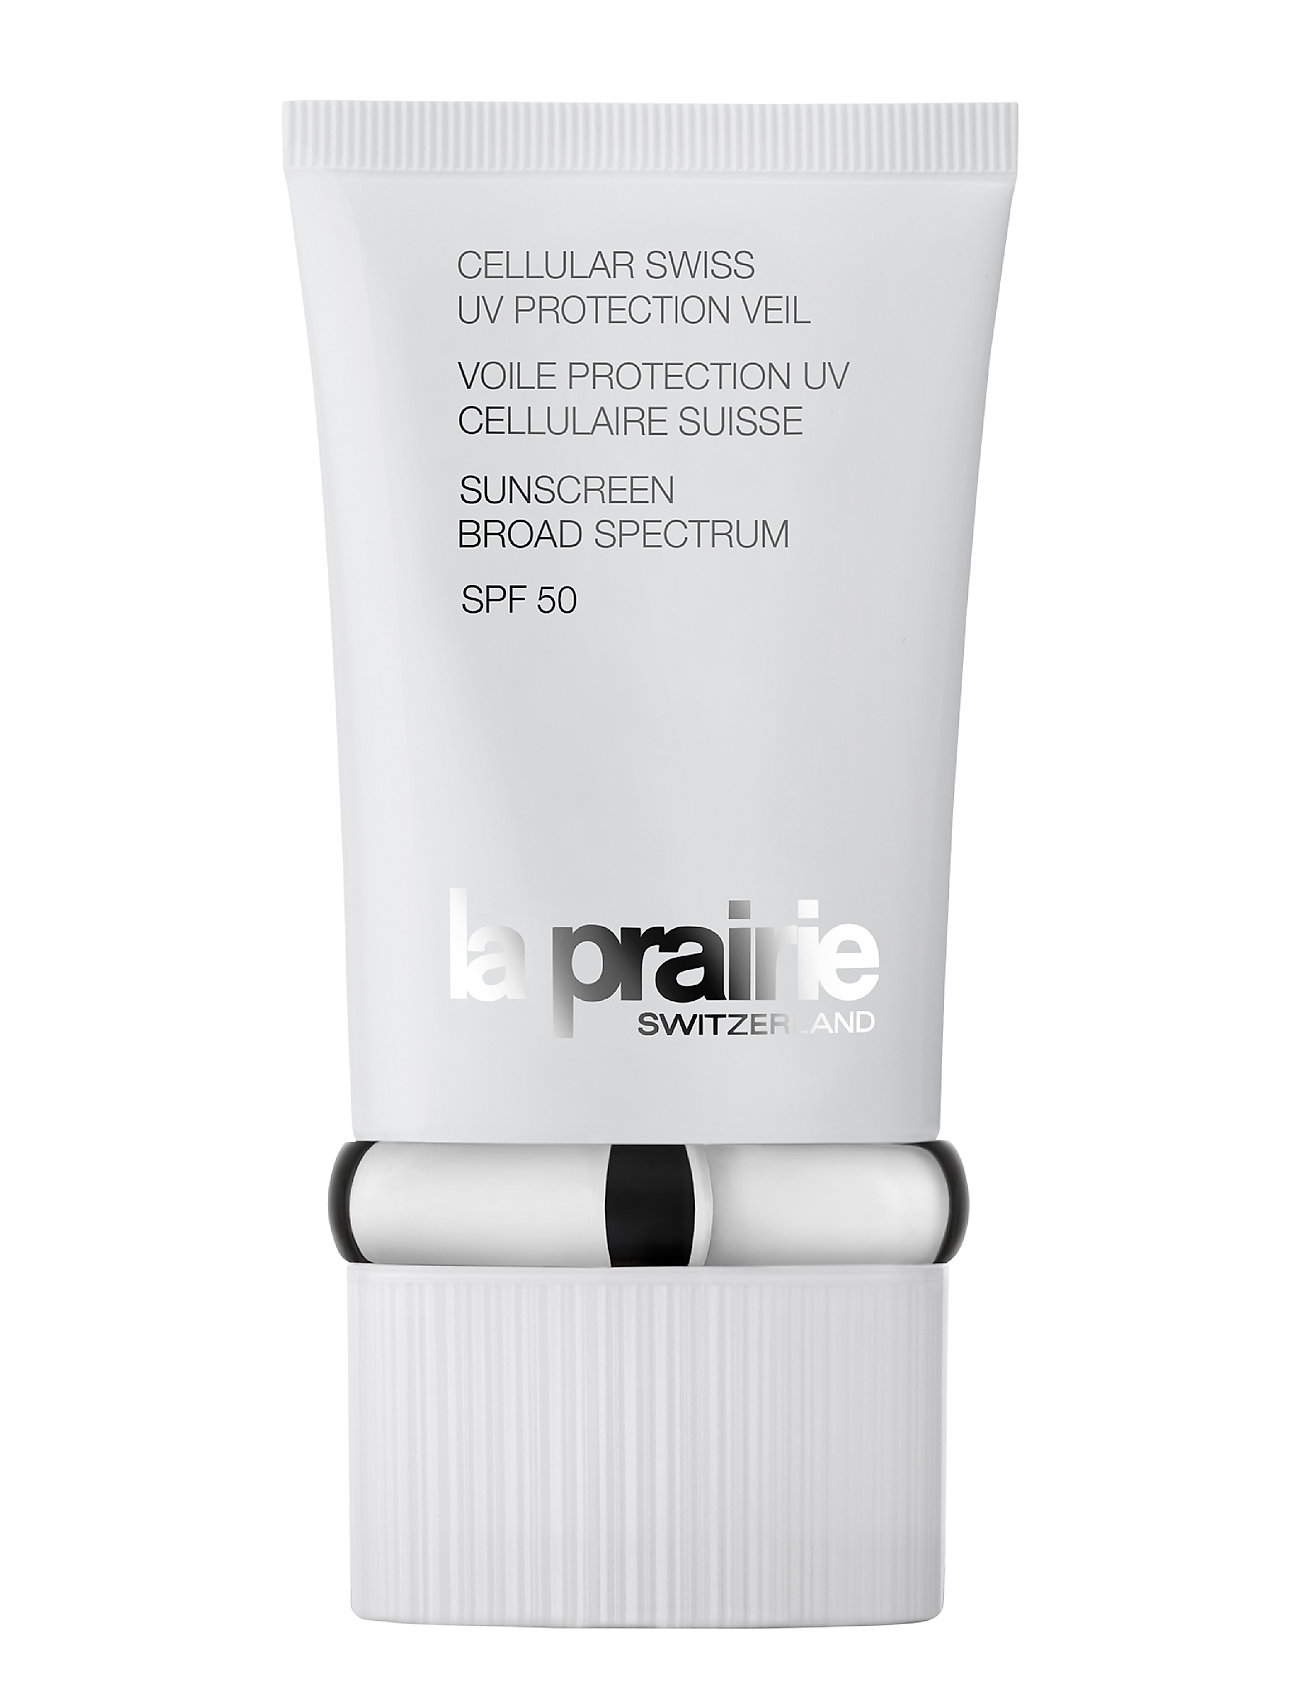 La Prairie UV PROTECTION CELLULAR SWISS UV PROTECTION VEIL - NO COLOR